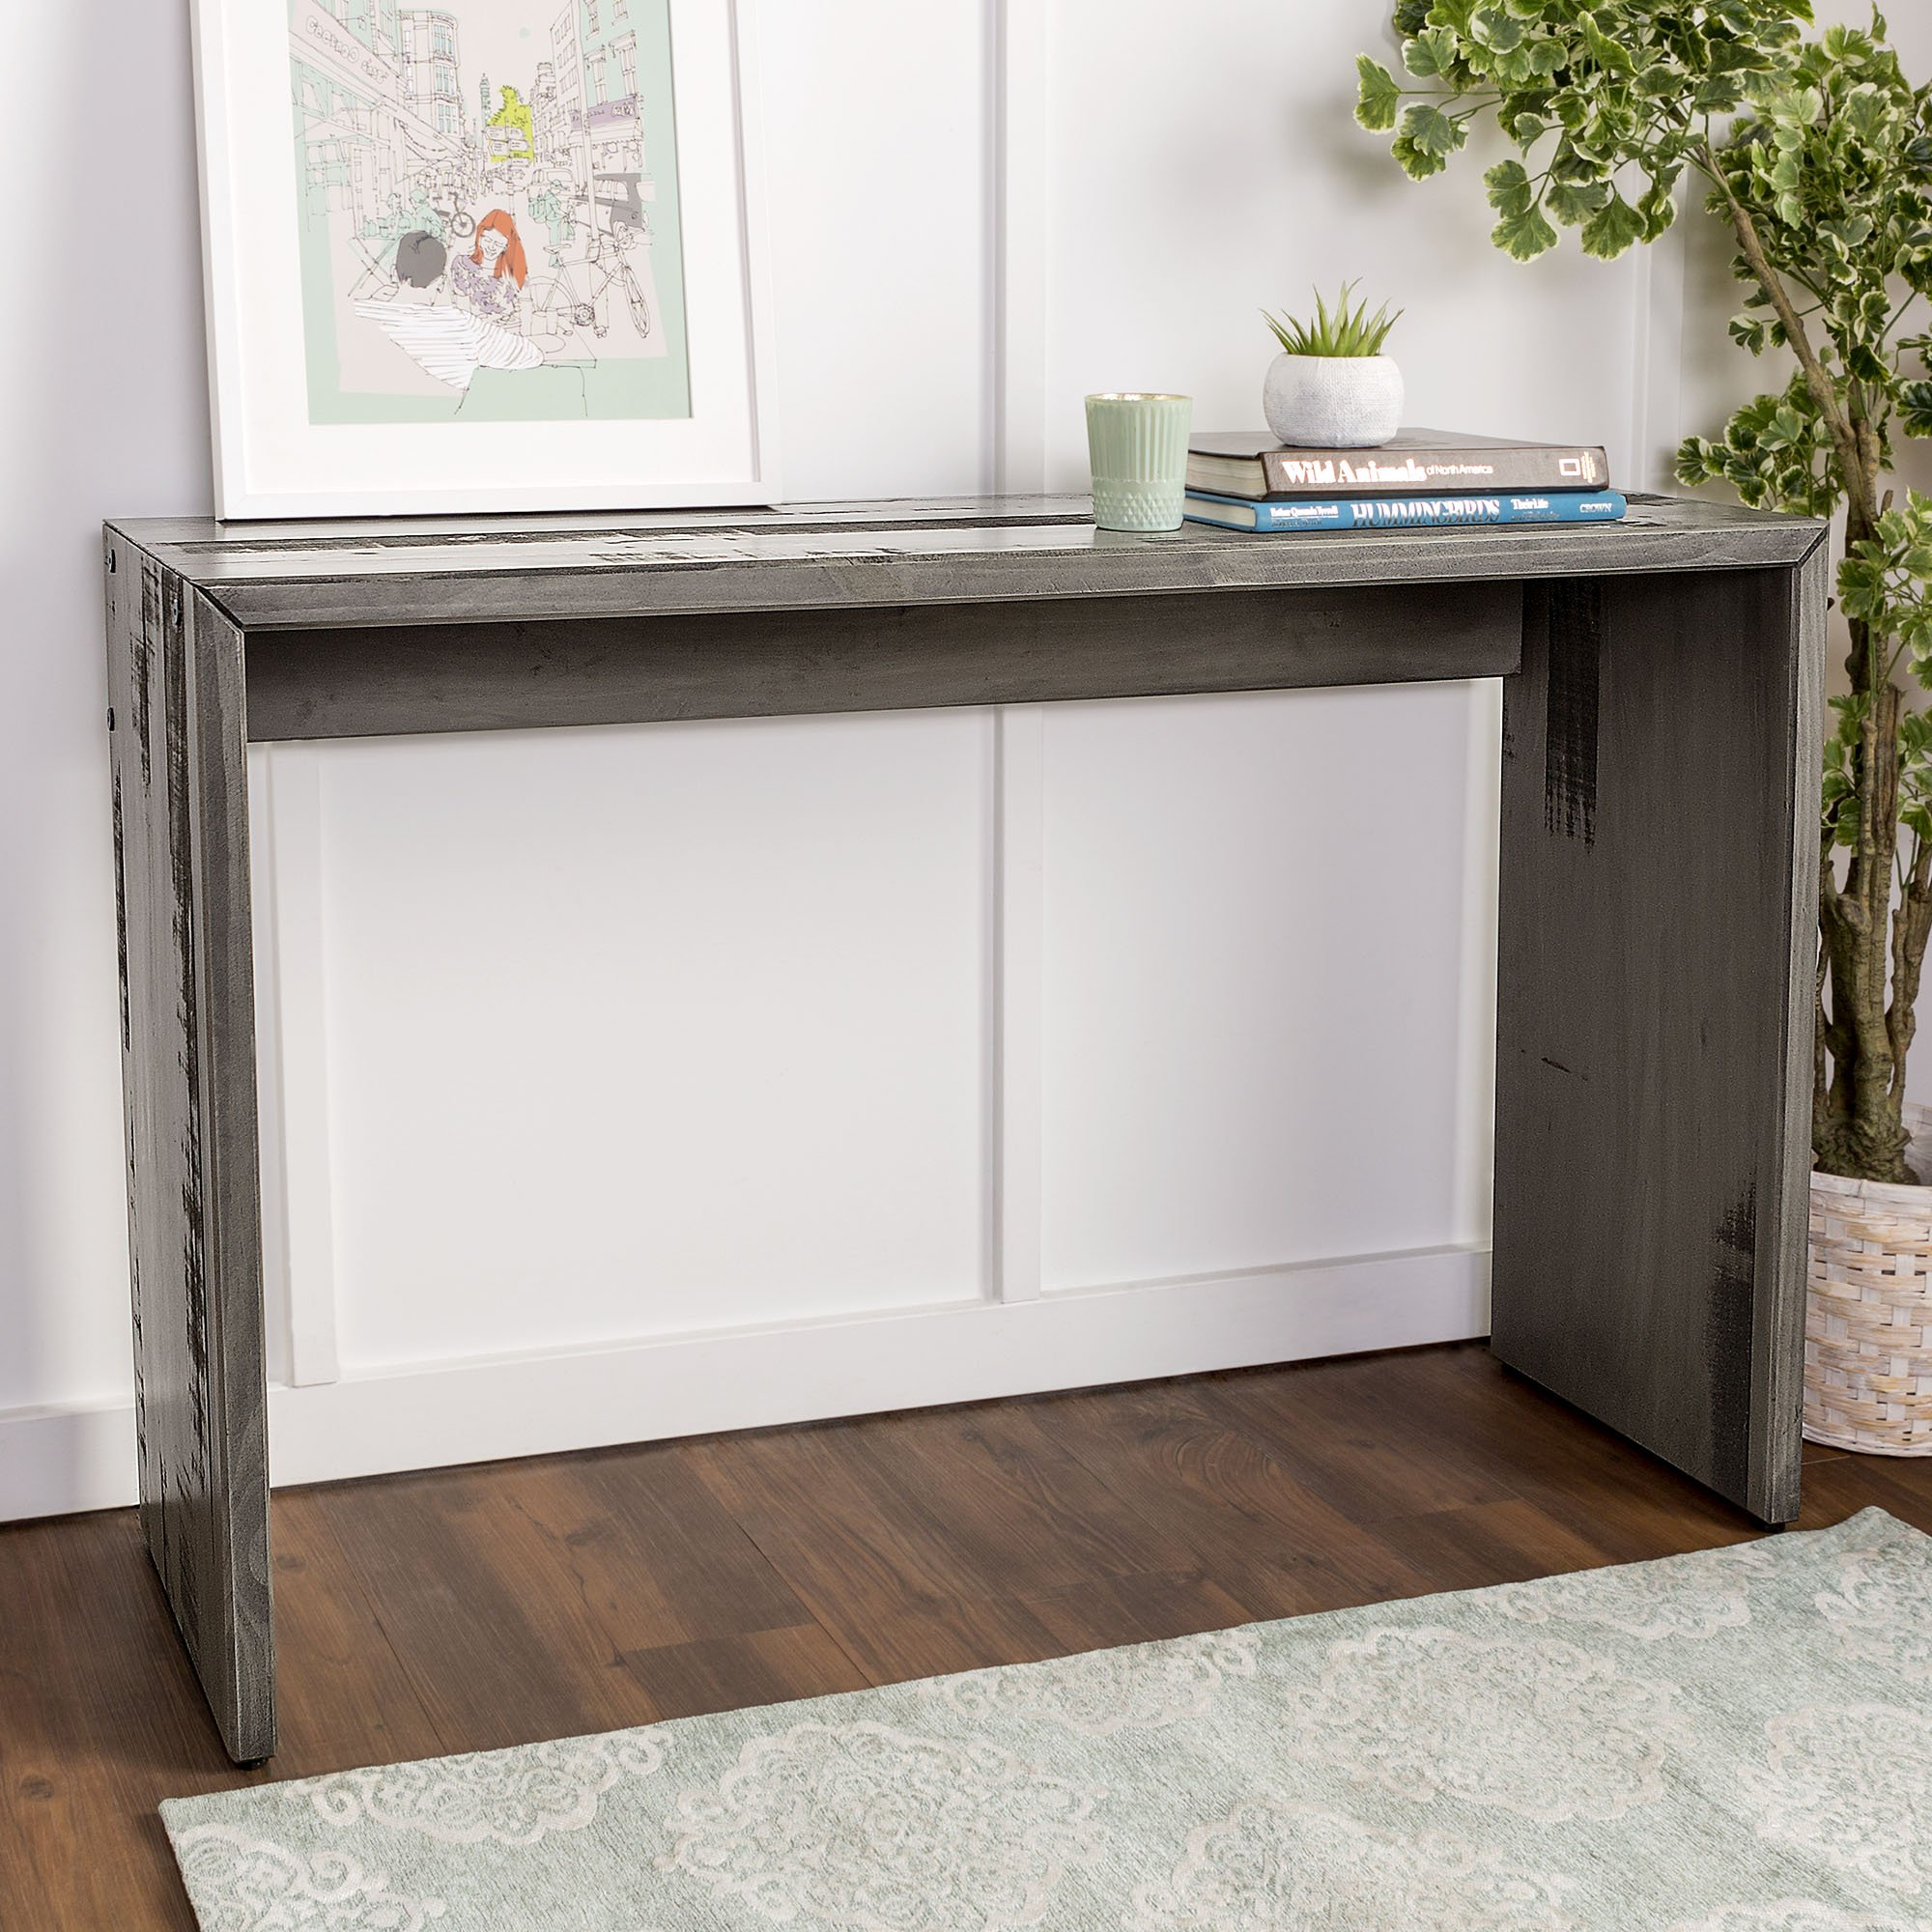 WE Furniture Reclaimed Wood Entry Table in Gray - 48''